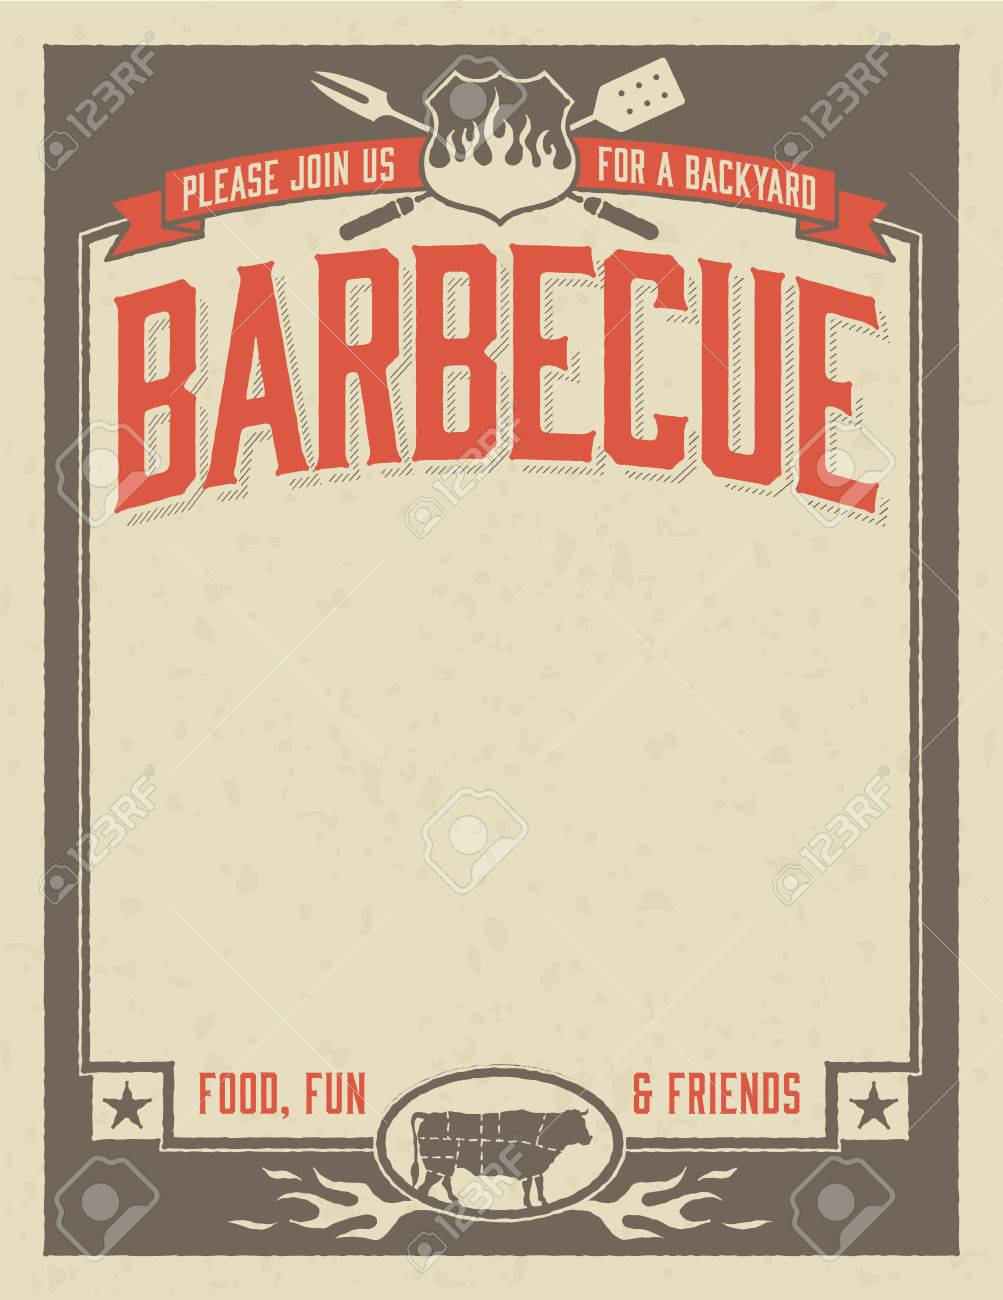 Bbq Invitation Template | Backyard Barbecue Invitation Template Royalty Free Cliparts Vectors